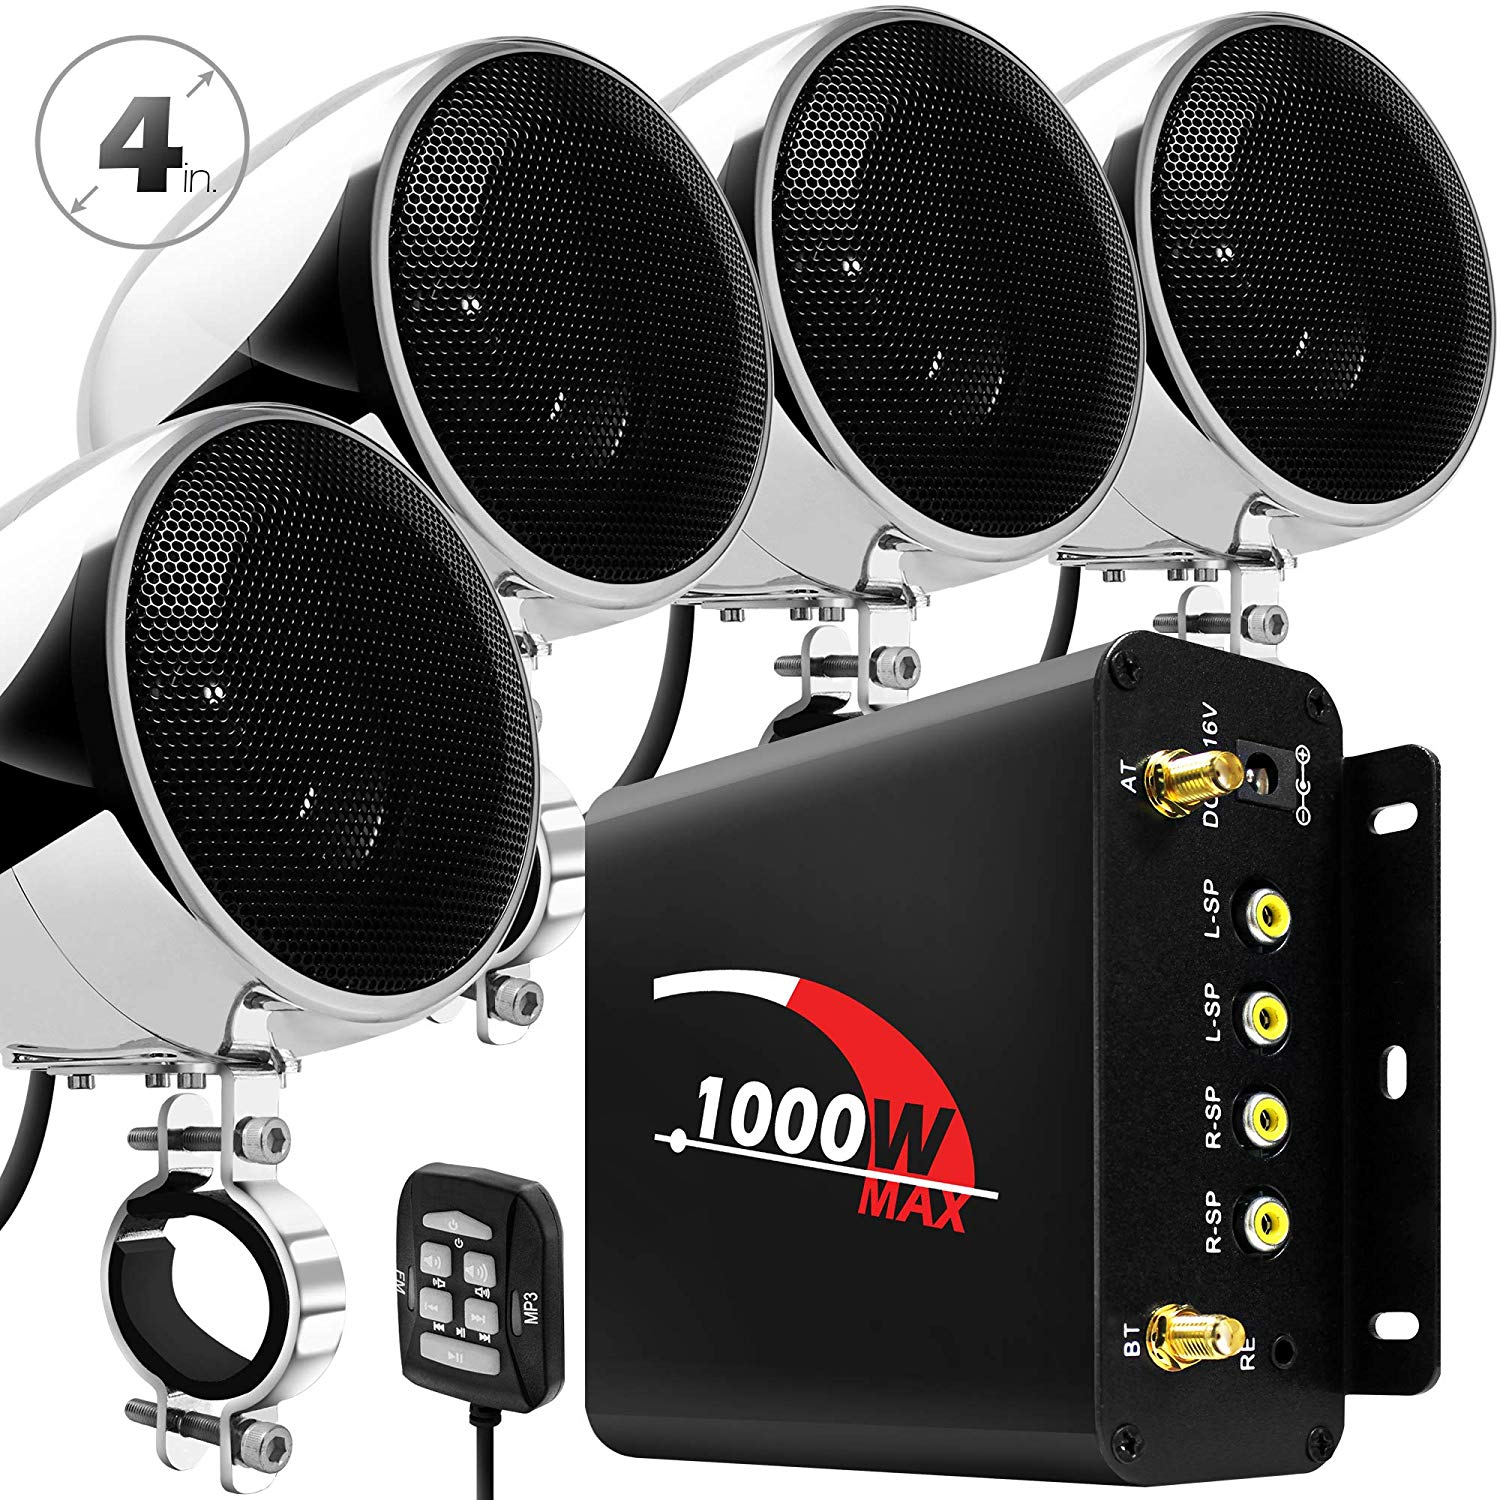 Aileap 1000W Motorcycle Audio 4 Channel Amplifier Speakers System Support Bluetooth AUX FM Radio SD Card USB Stick  Chrome